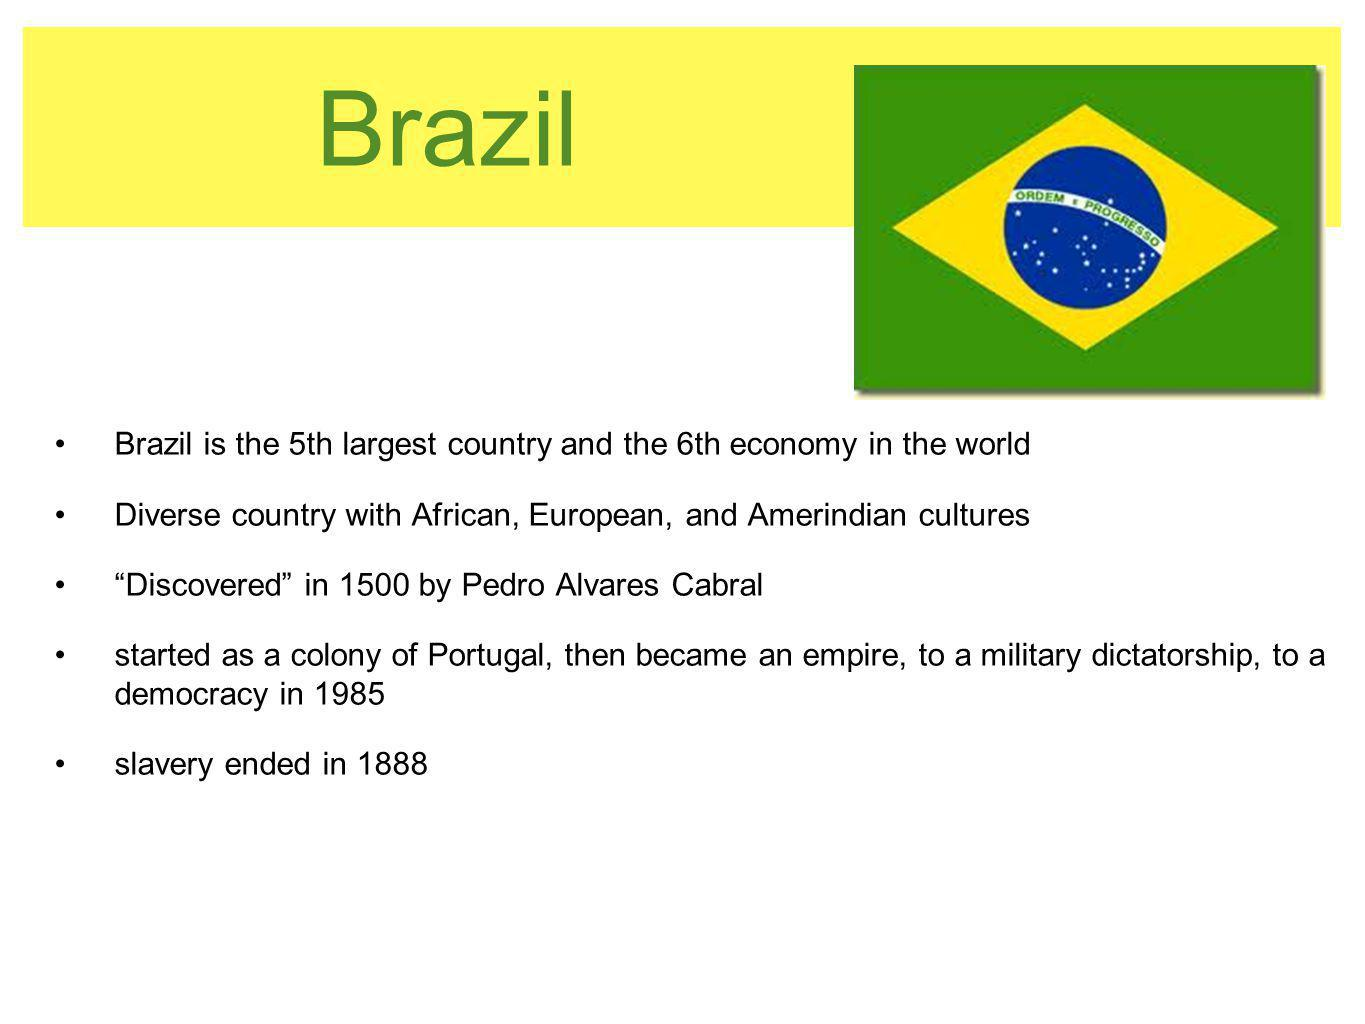 Brazil Brazil is the 5th largest country and the 6th economy in the world. Diverse country with African, European, and Amerindian cultures.